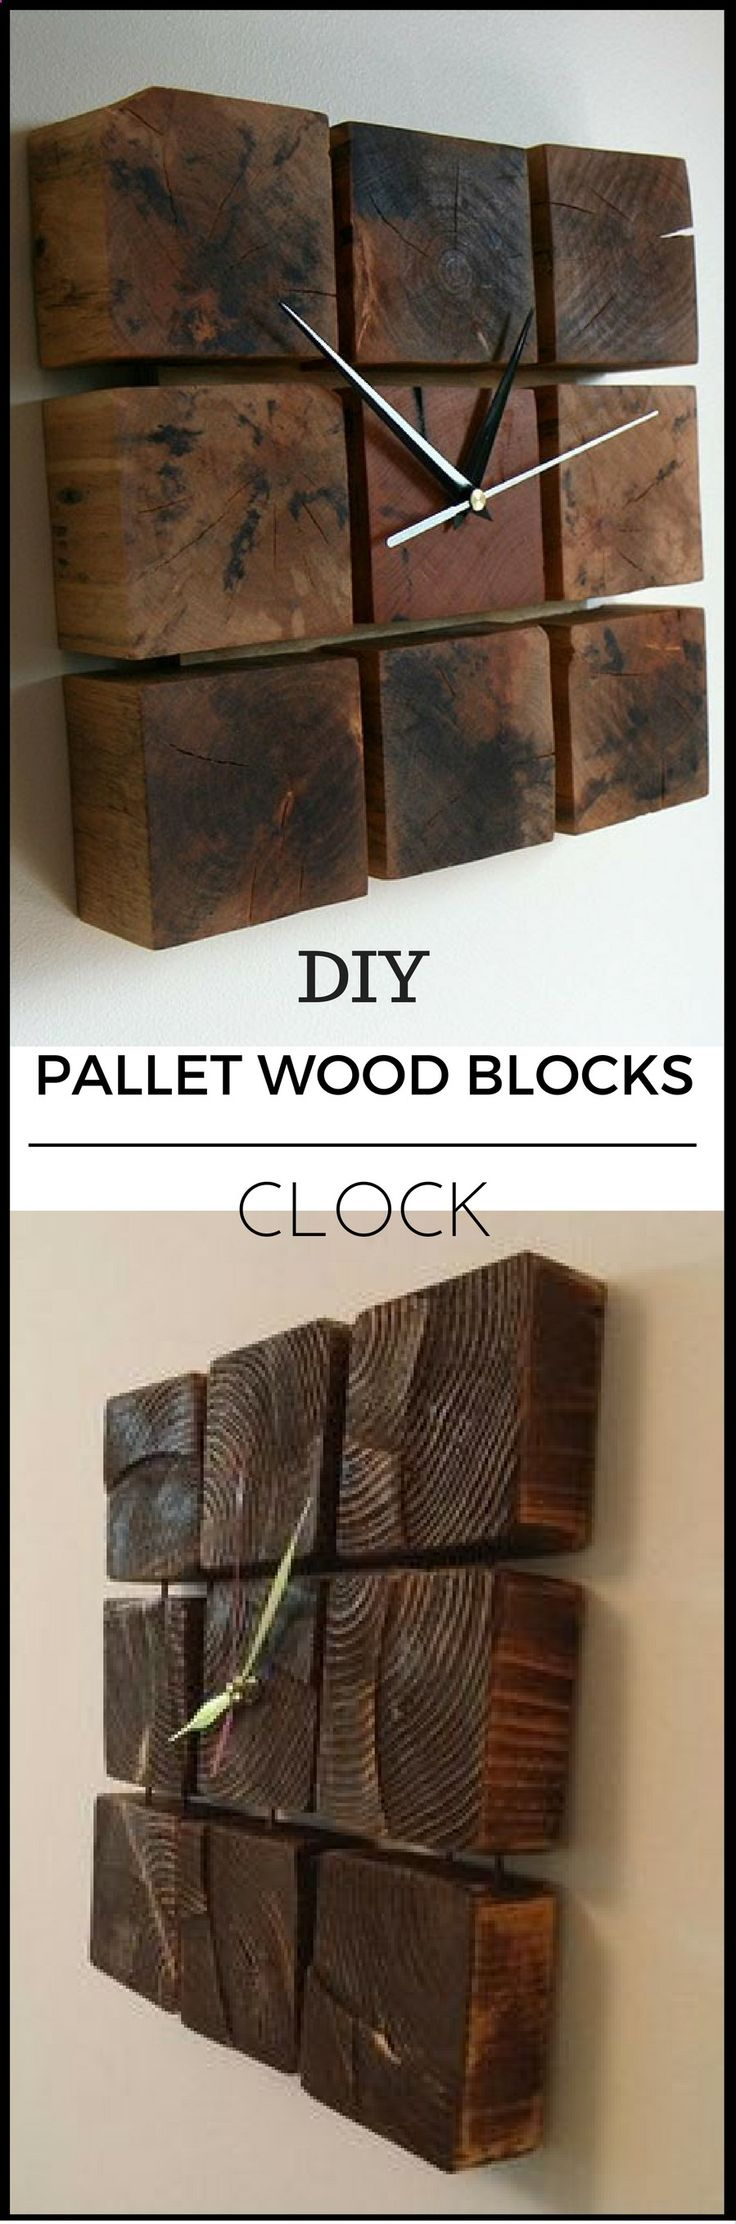 How To Make A Pallet Wood Blocks Clock vid.staged.com/95Zs